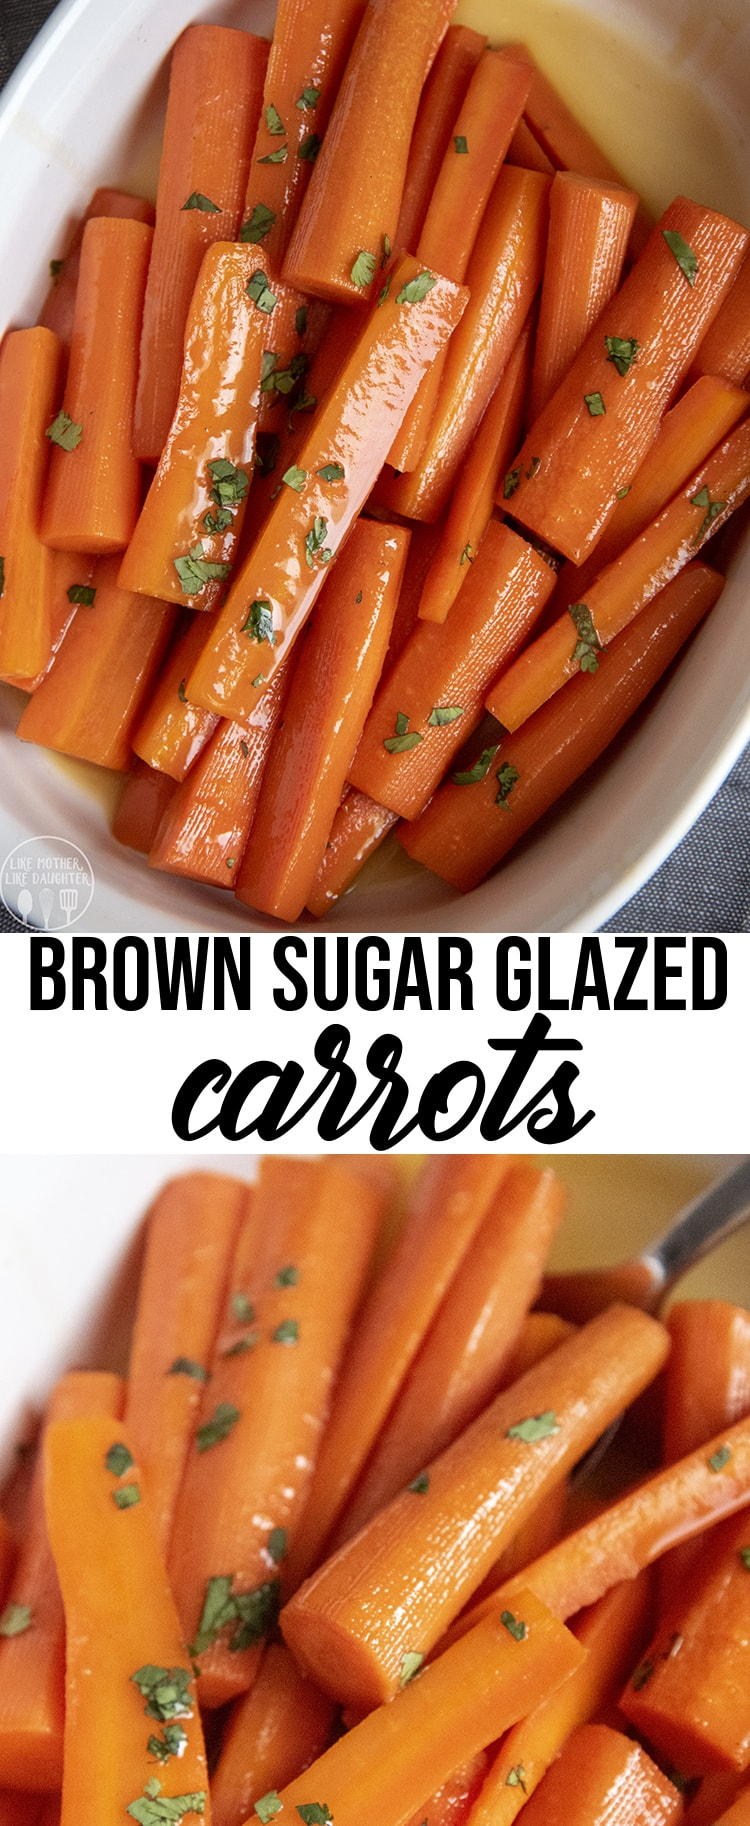 These brown sugar glazed carrots, are covered in a sweet butter and brown sugar glaze. They are the perfect side dish, and you may even find yourself snacking on them before dinner starts. #Easter #Thanksgiving #SideDish #Carrots